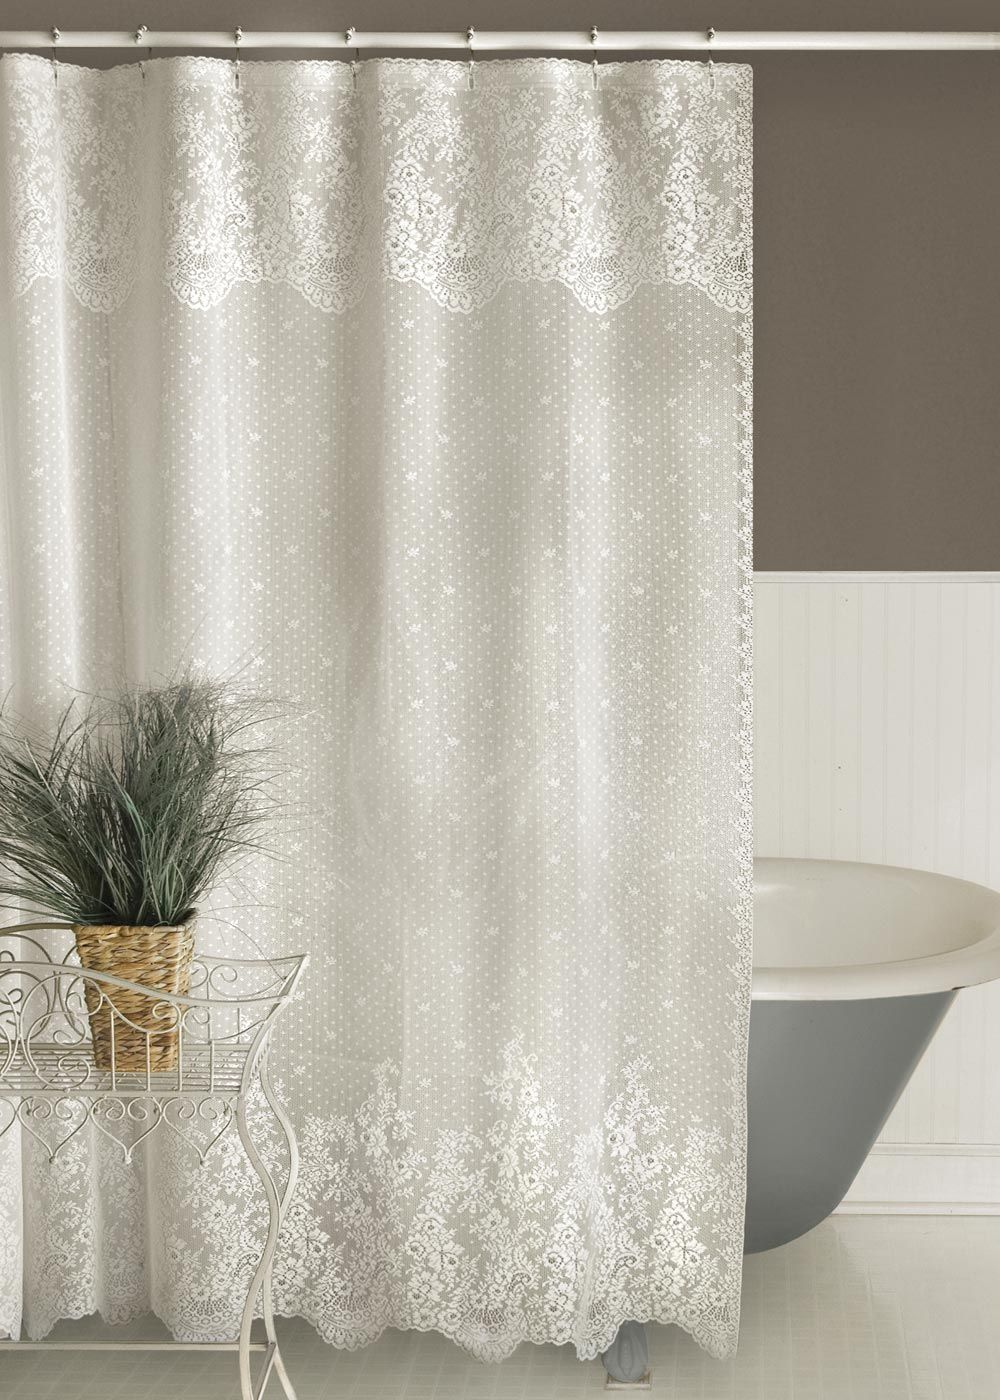 Floret Shower Curtain What A Beautiful Shower Curtain For The